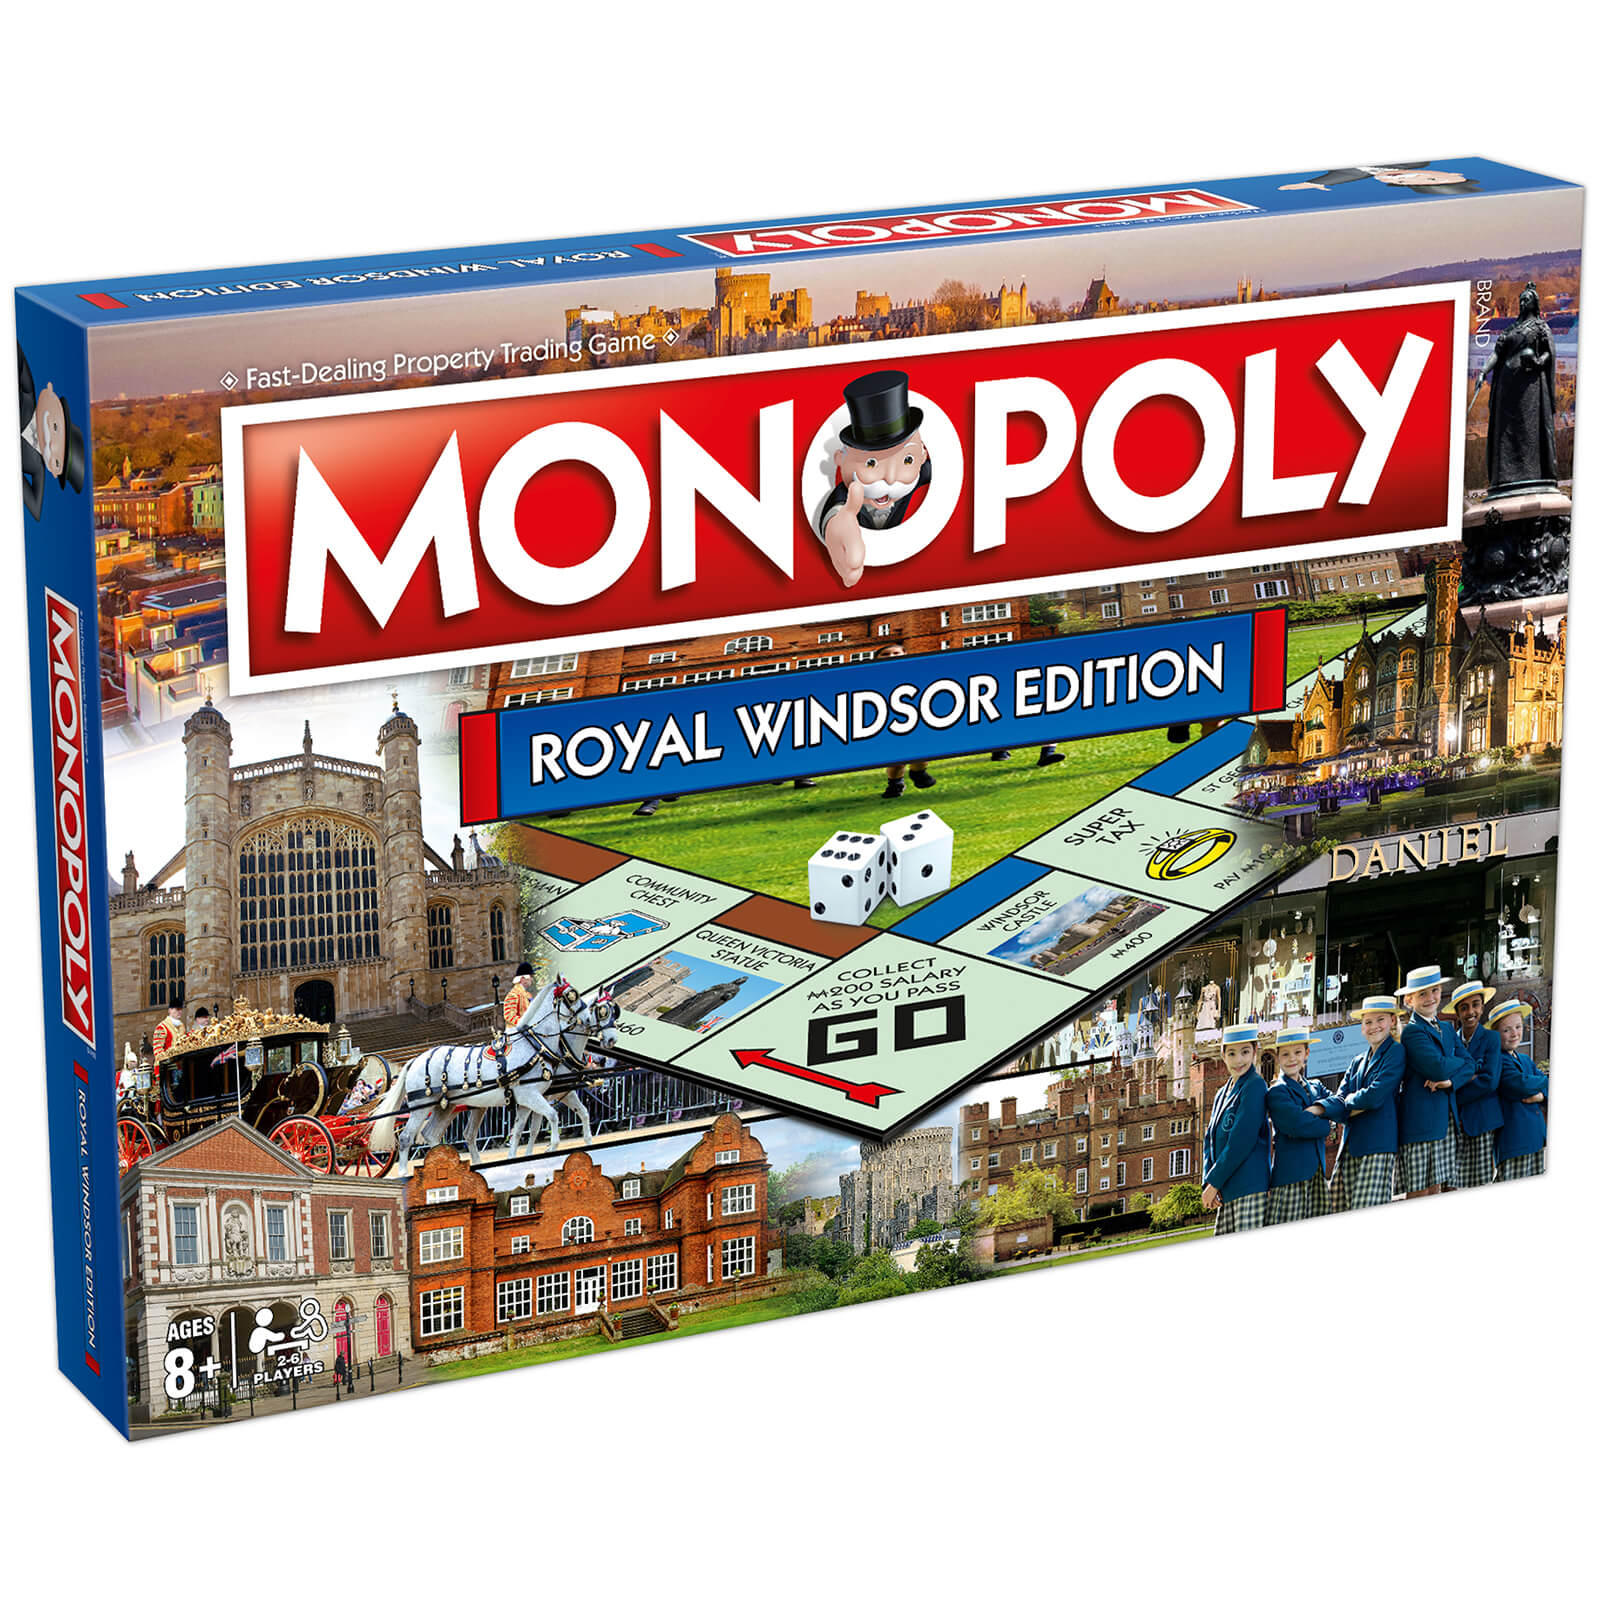 Image of Monopoly Board Game - Royal Windsor Edition